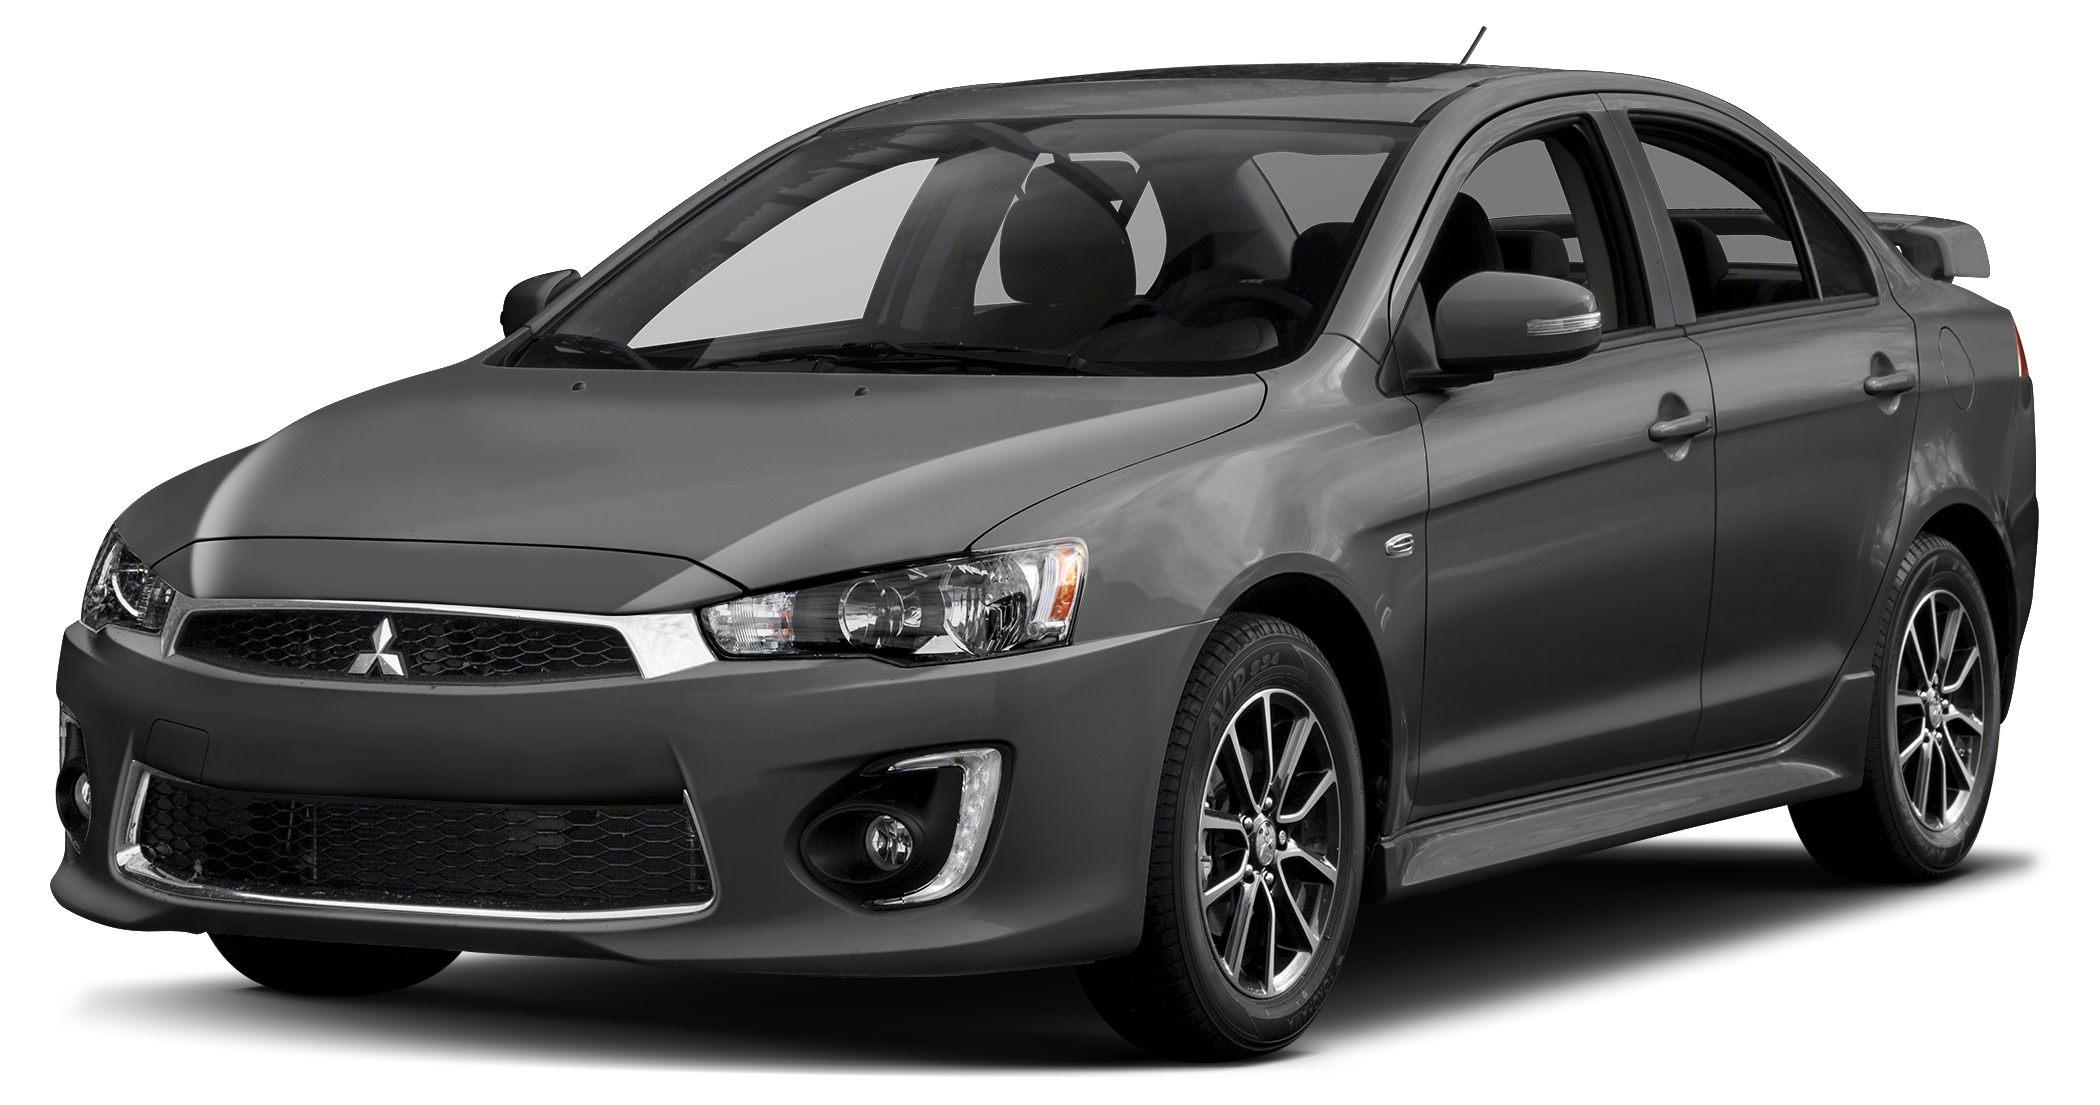 2017 Mitsubishi Lancer LE The Mitsubishi Lancer is a unique sedan that is a great value with an im